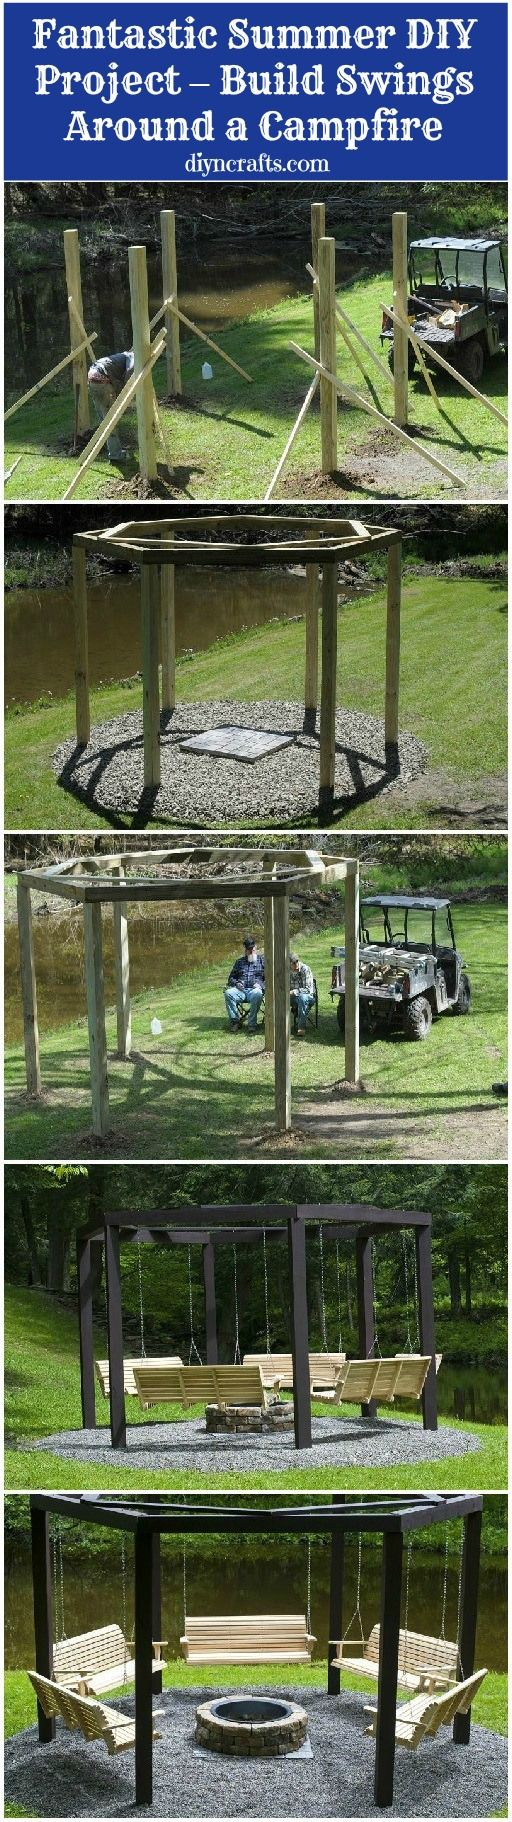 Bonfire swings! I love this idea!